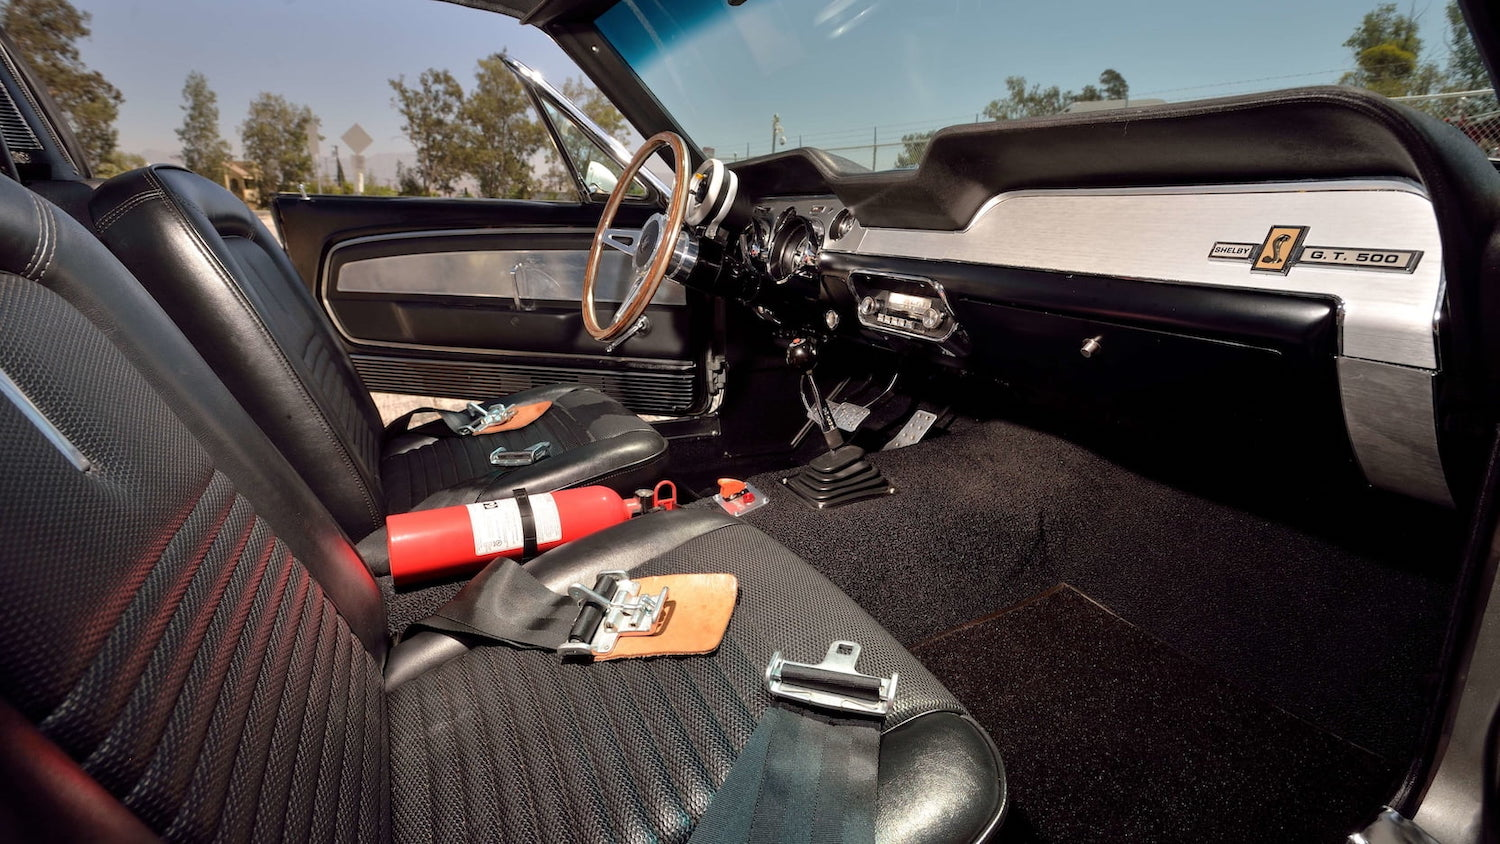 1967 Ford Mustang Movie Car